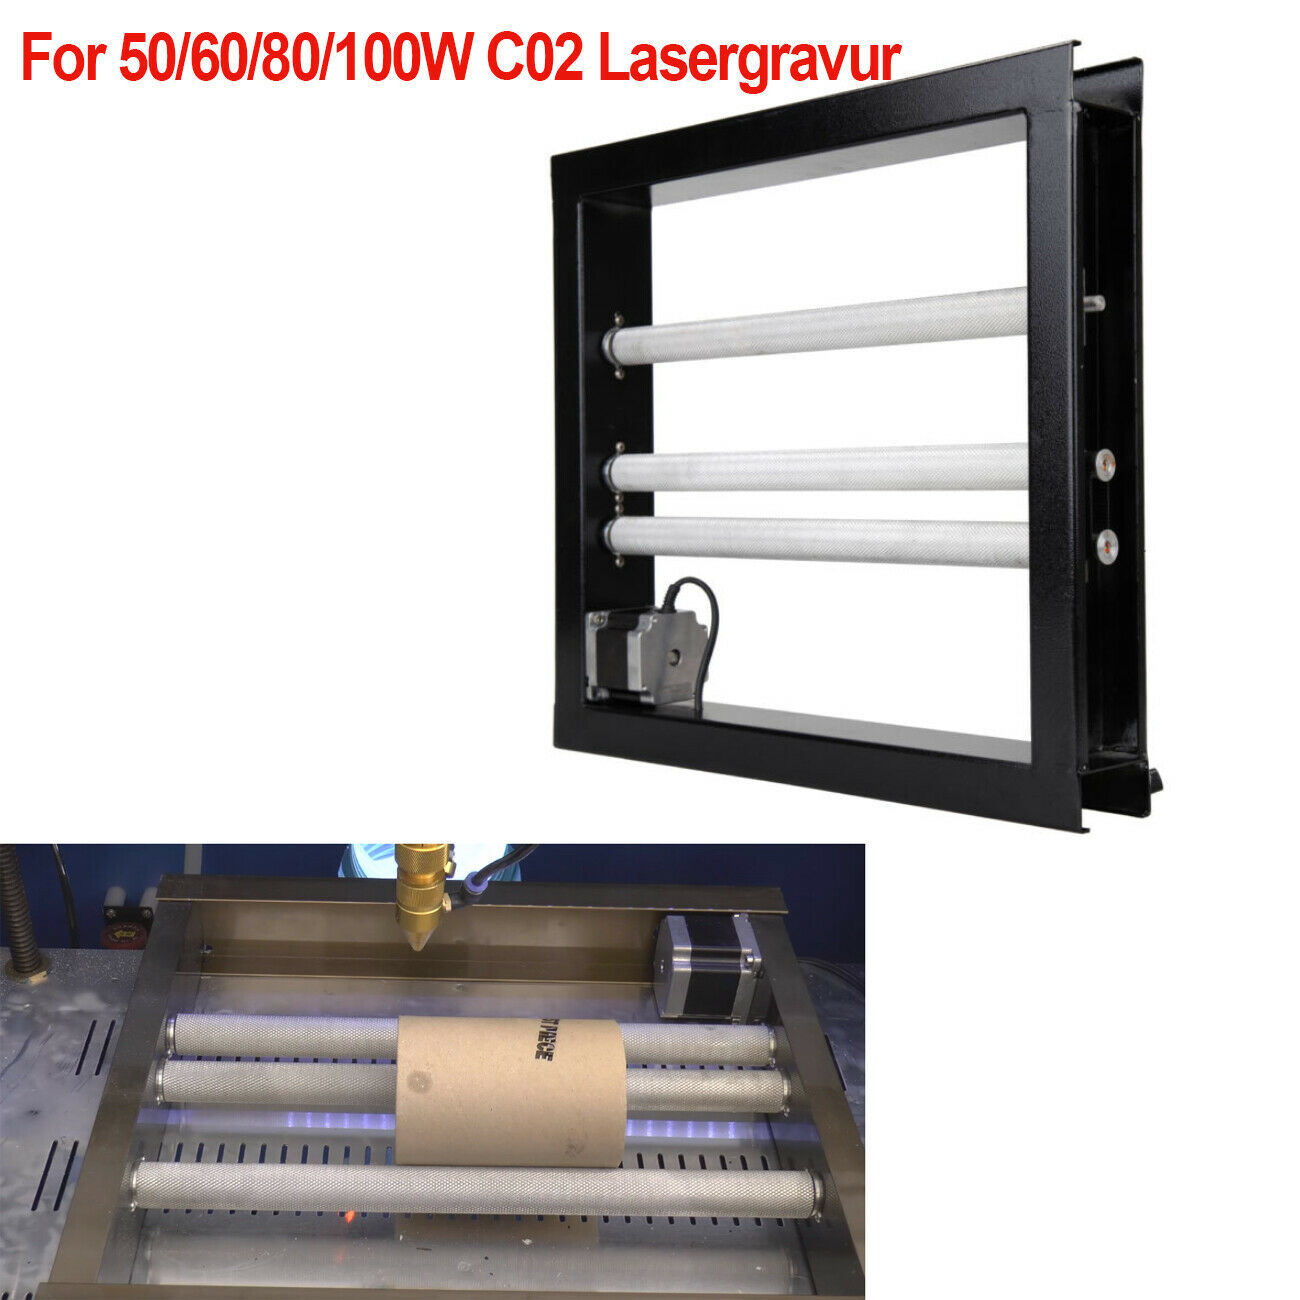 Rotary Axis Attachment Cylinder 4th Axis For Co2 Laser Cutter Engraving Machine